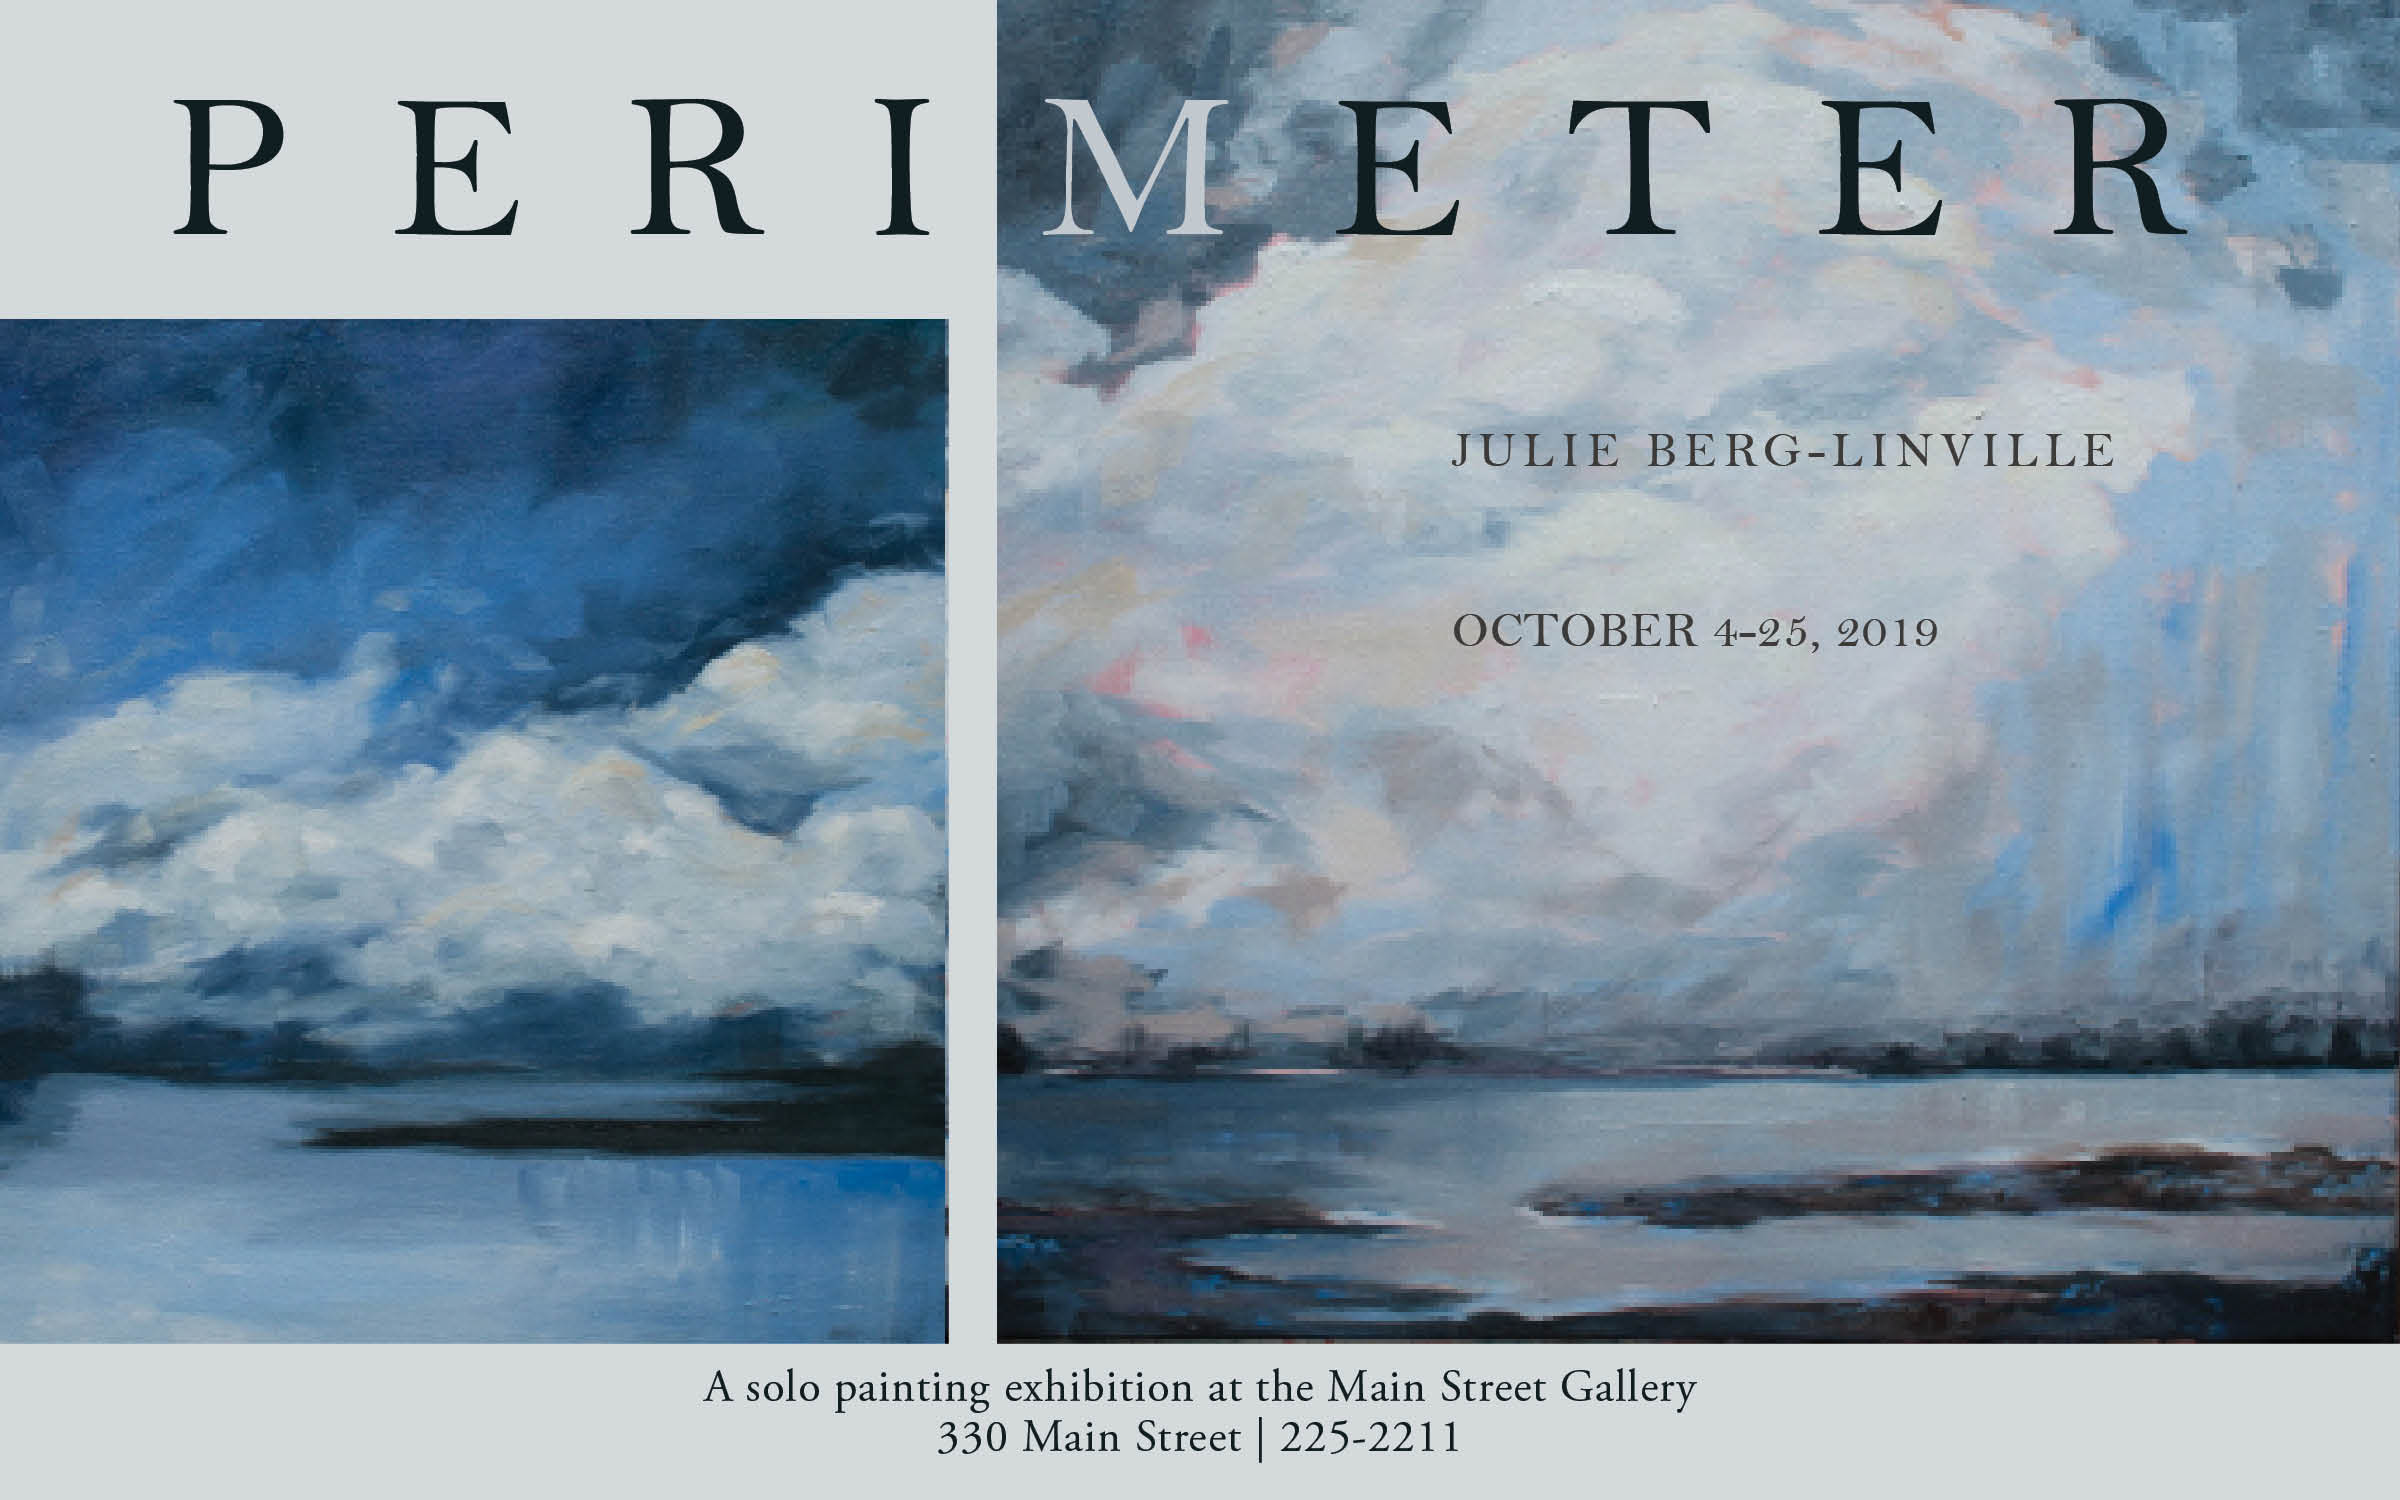 """Perimeter"" - an exhibit by Julie Berg-Linville at the Main Street Gallery"